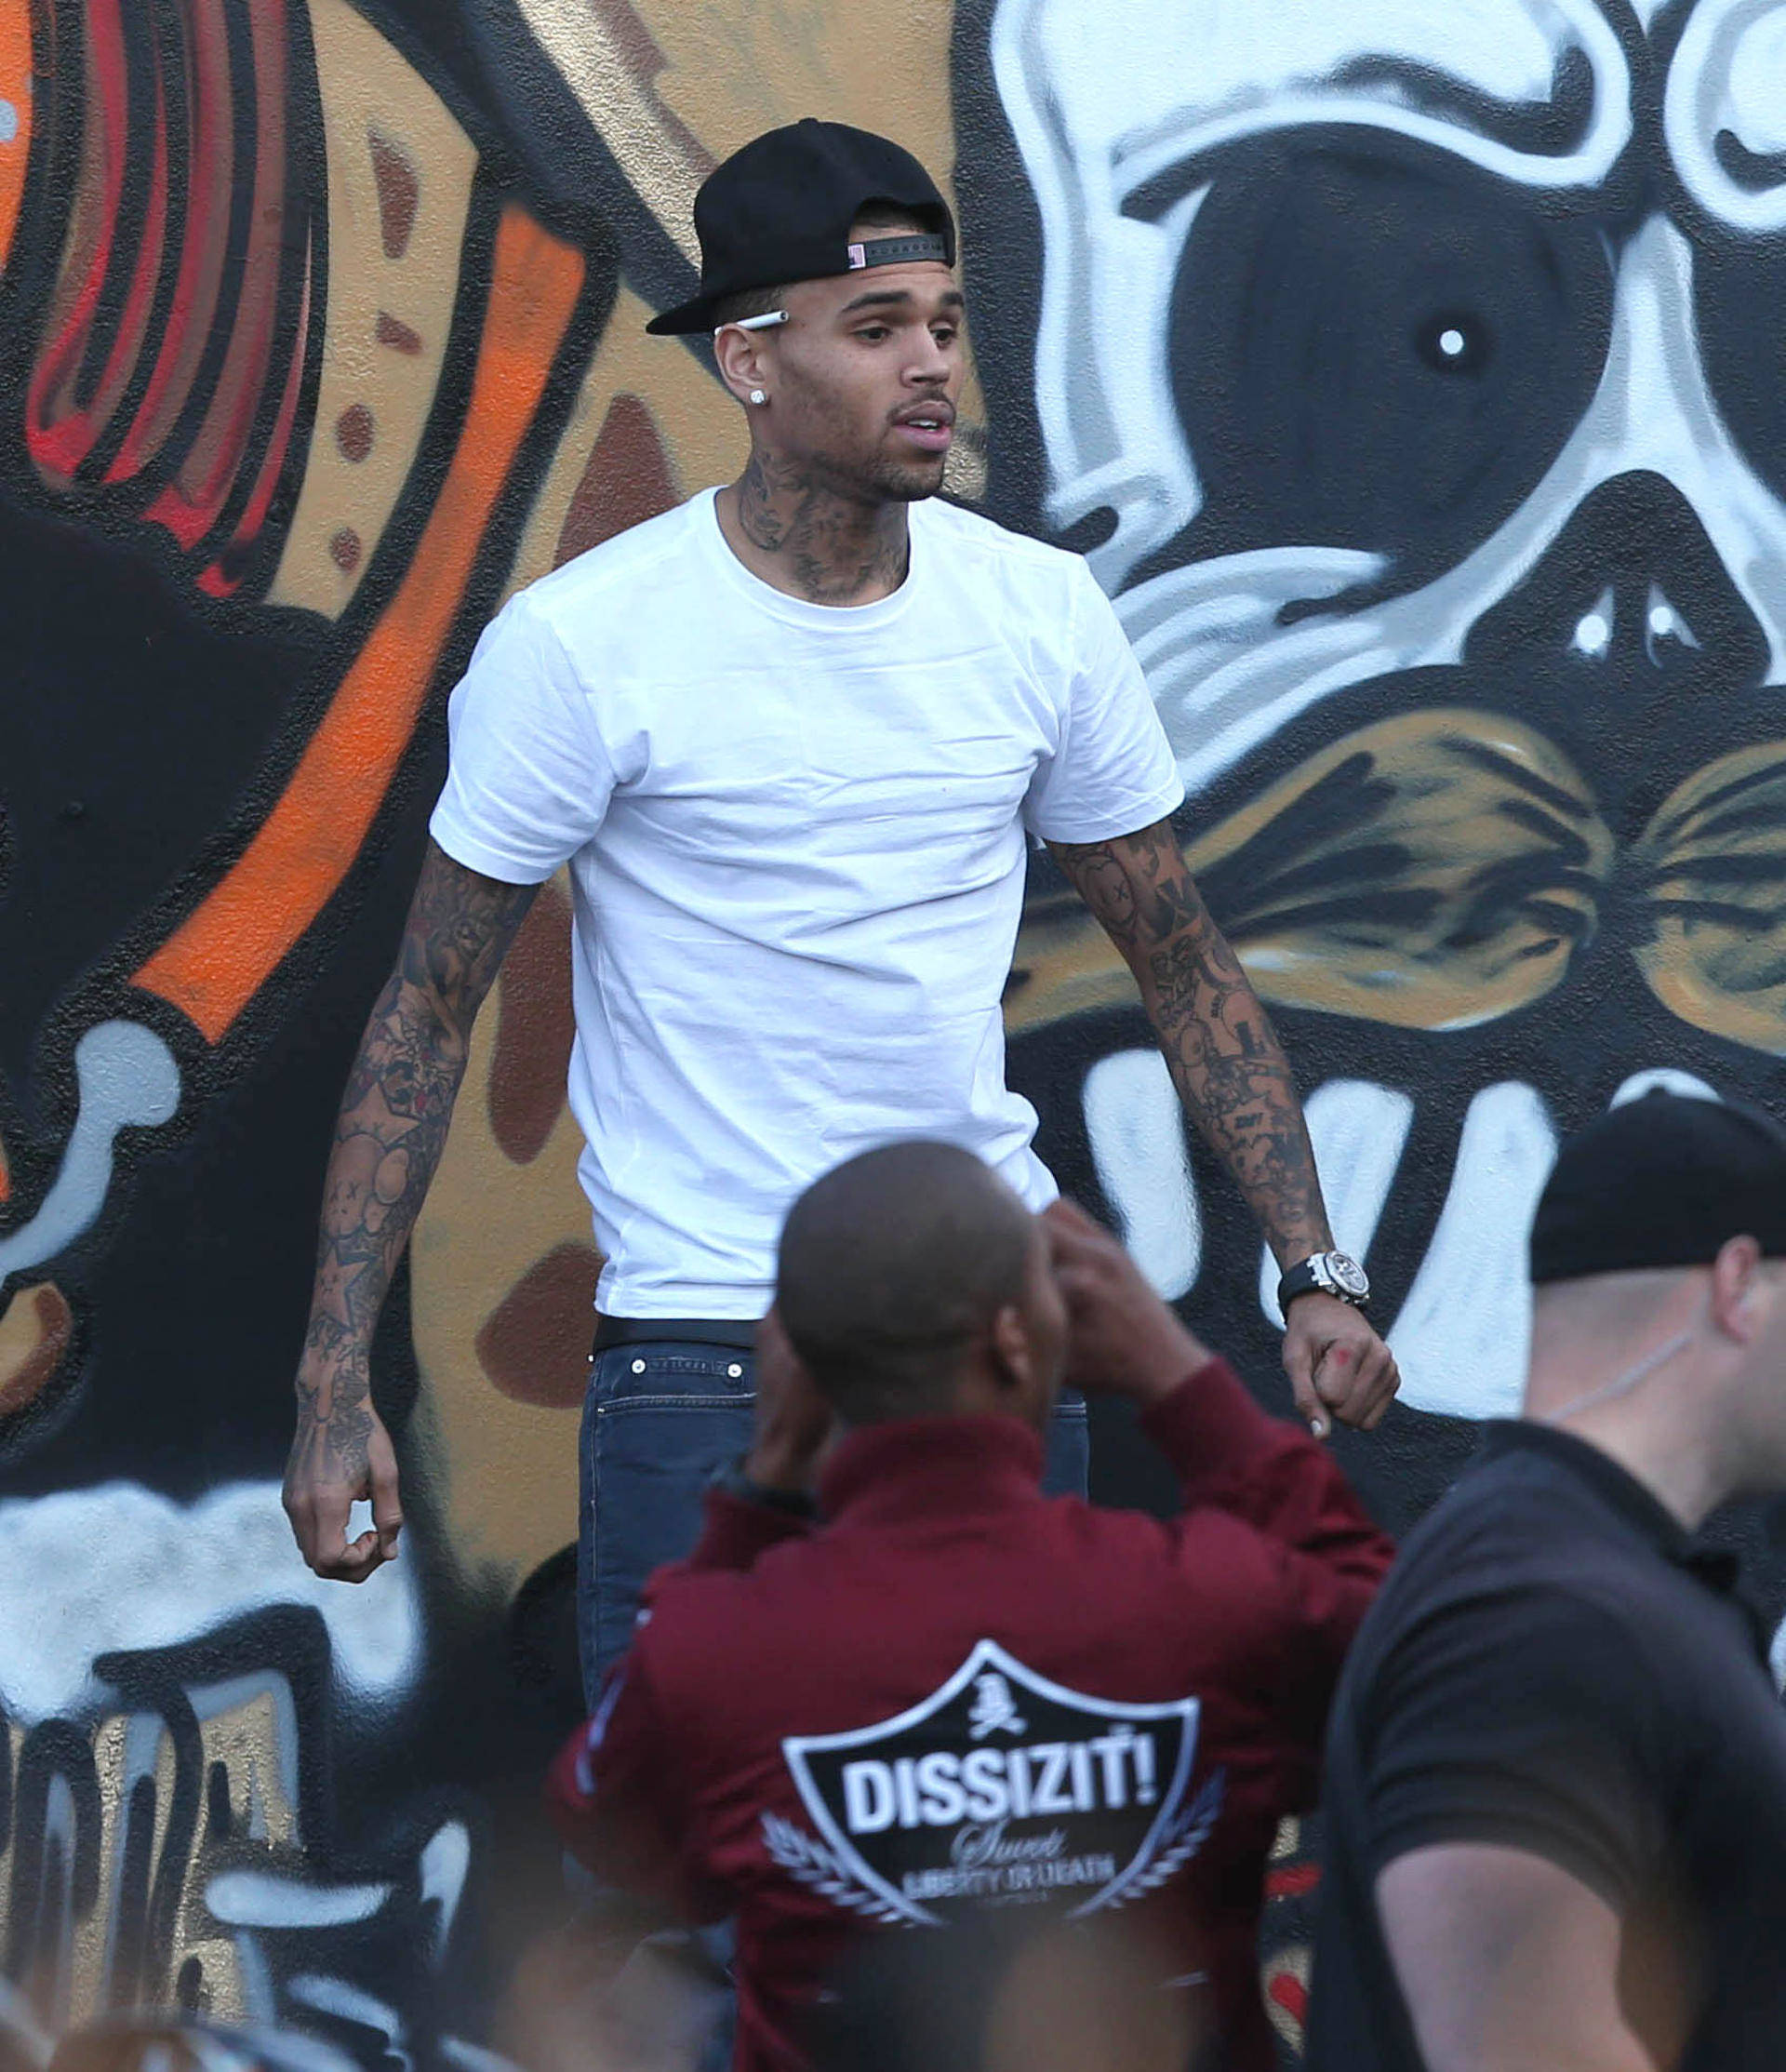 Chris brown spray paints a mural in miami 141408 for Chris brown mural